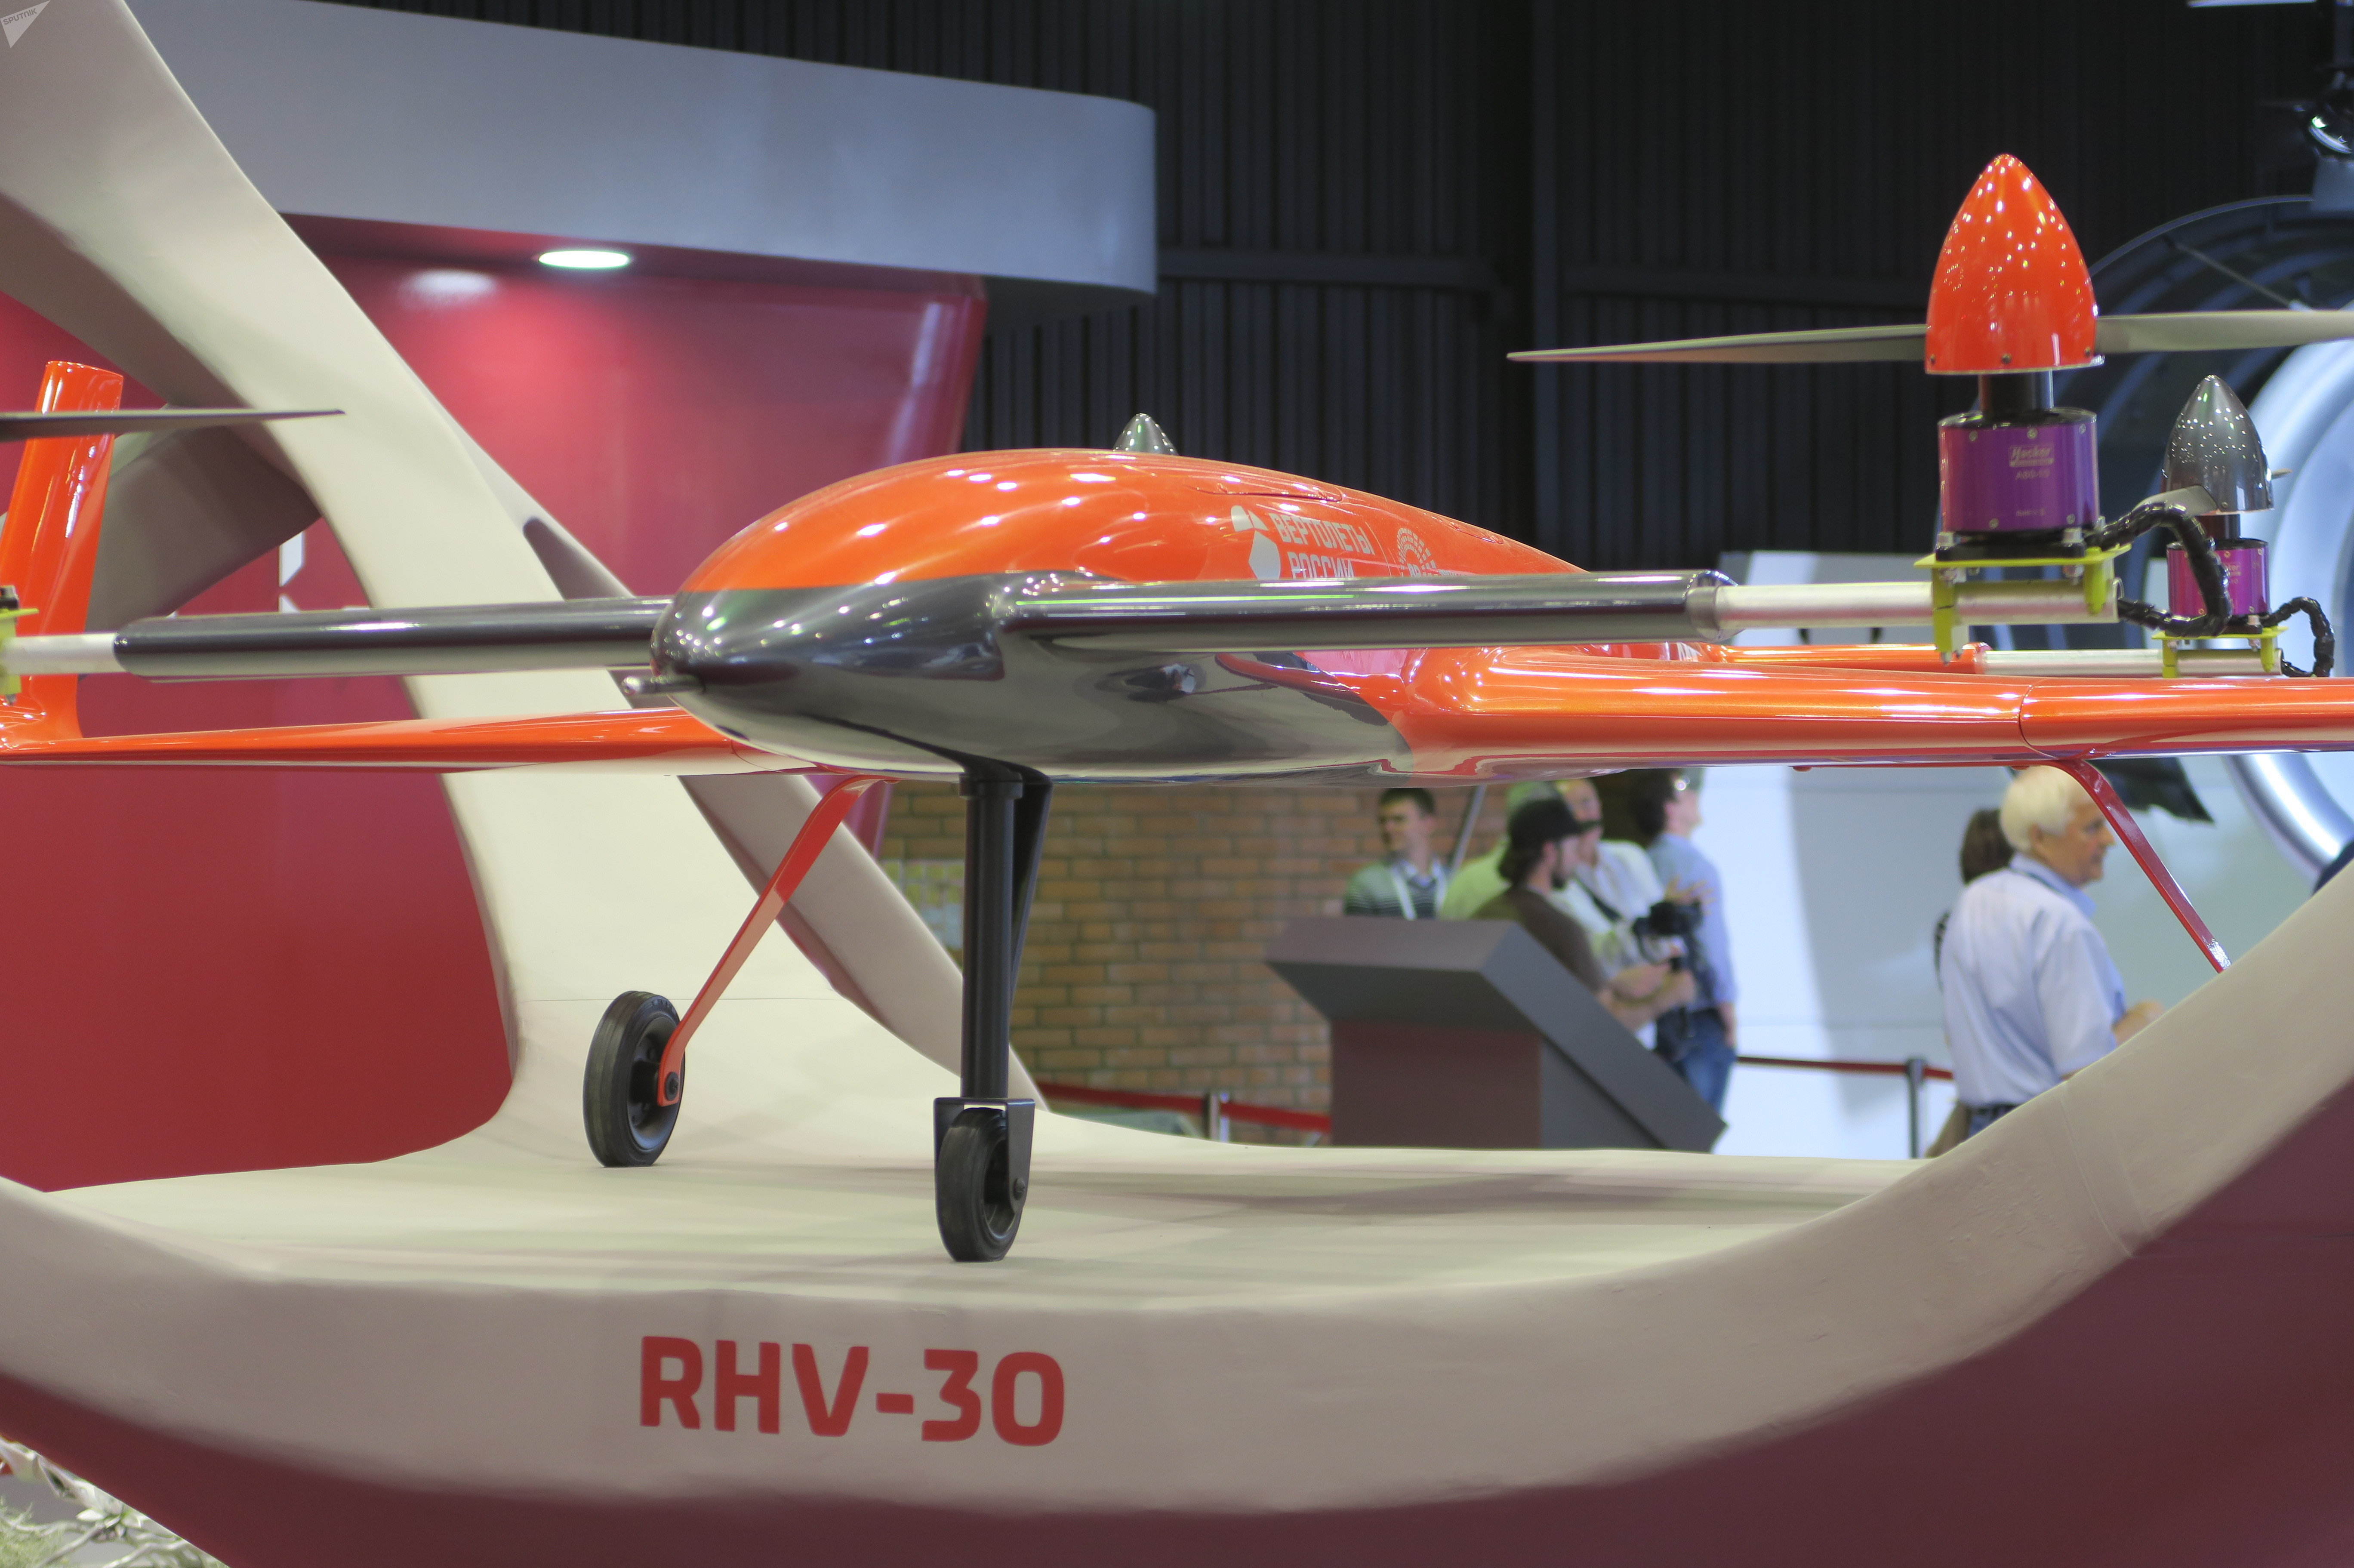 A Russian convertible aircraft is on display at the MAKS-2017 air show